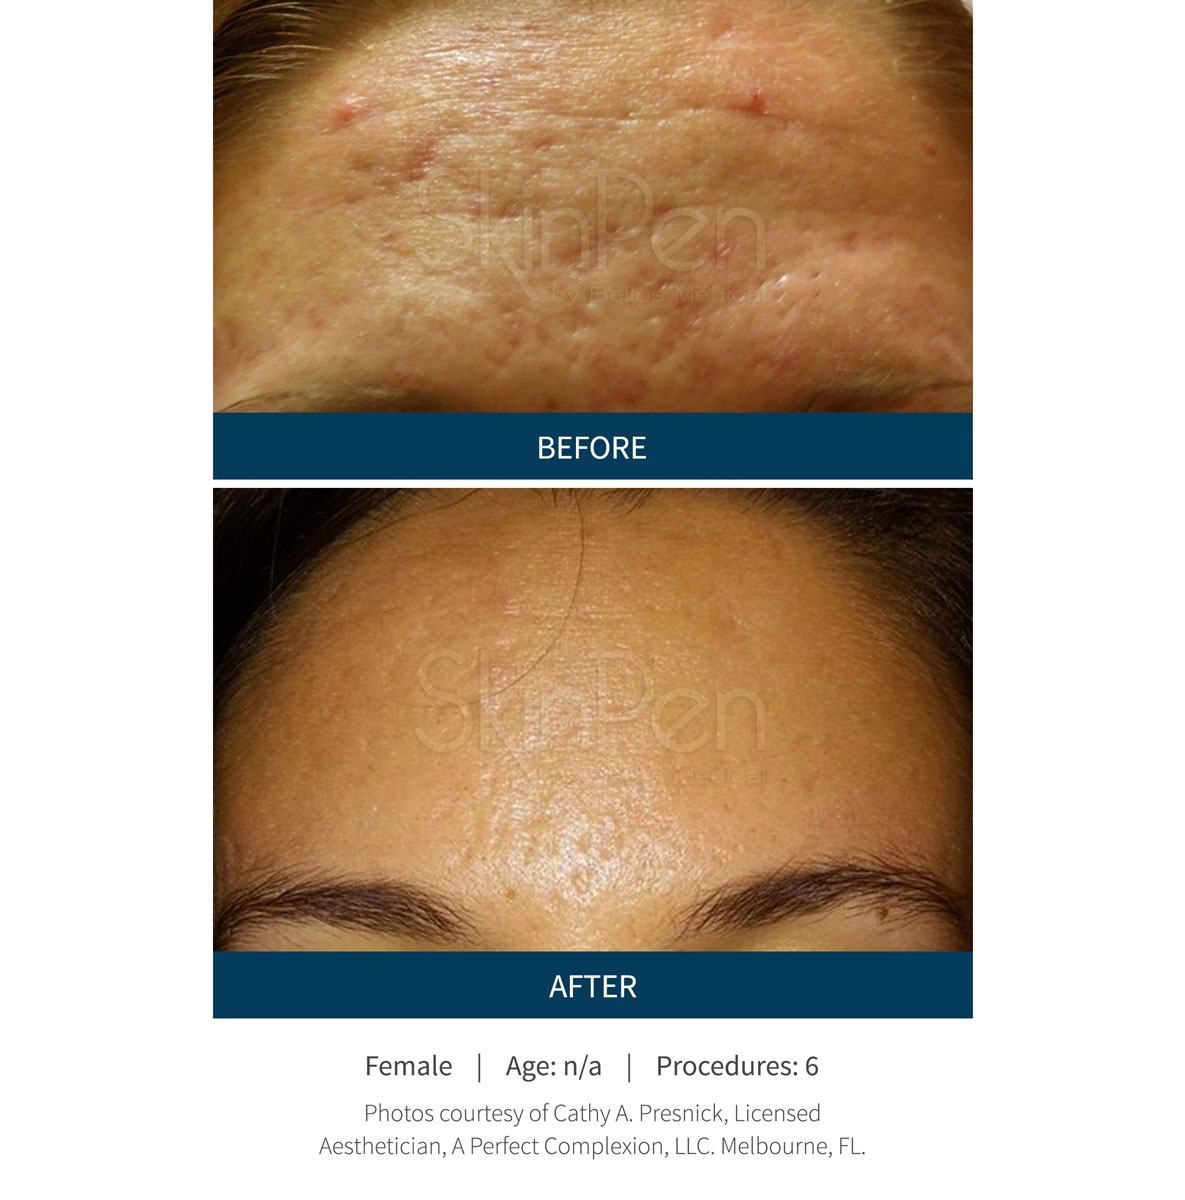 The SkinPen microneedling before and after clinical results.